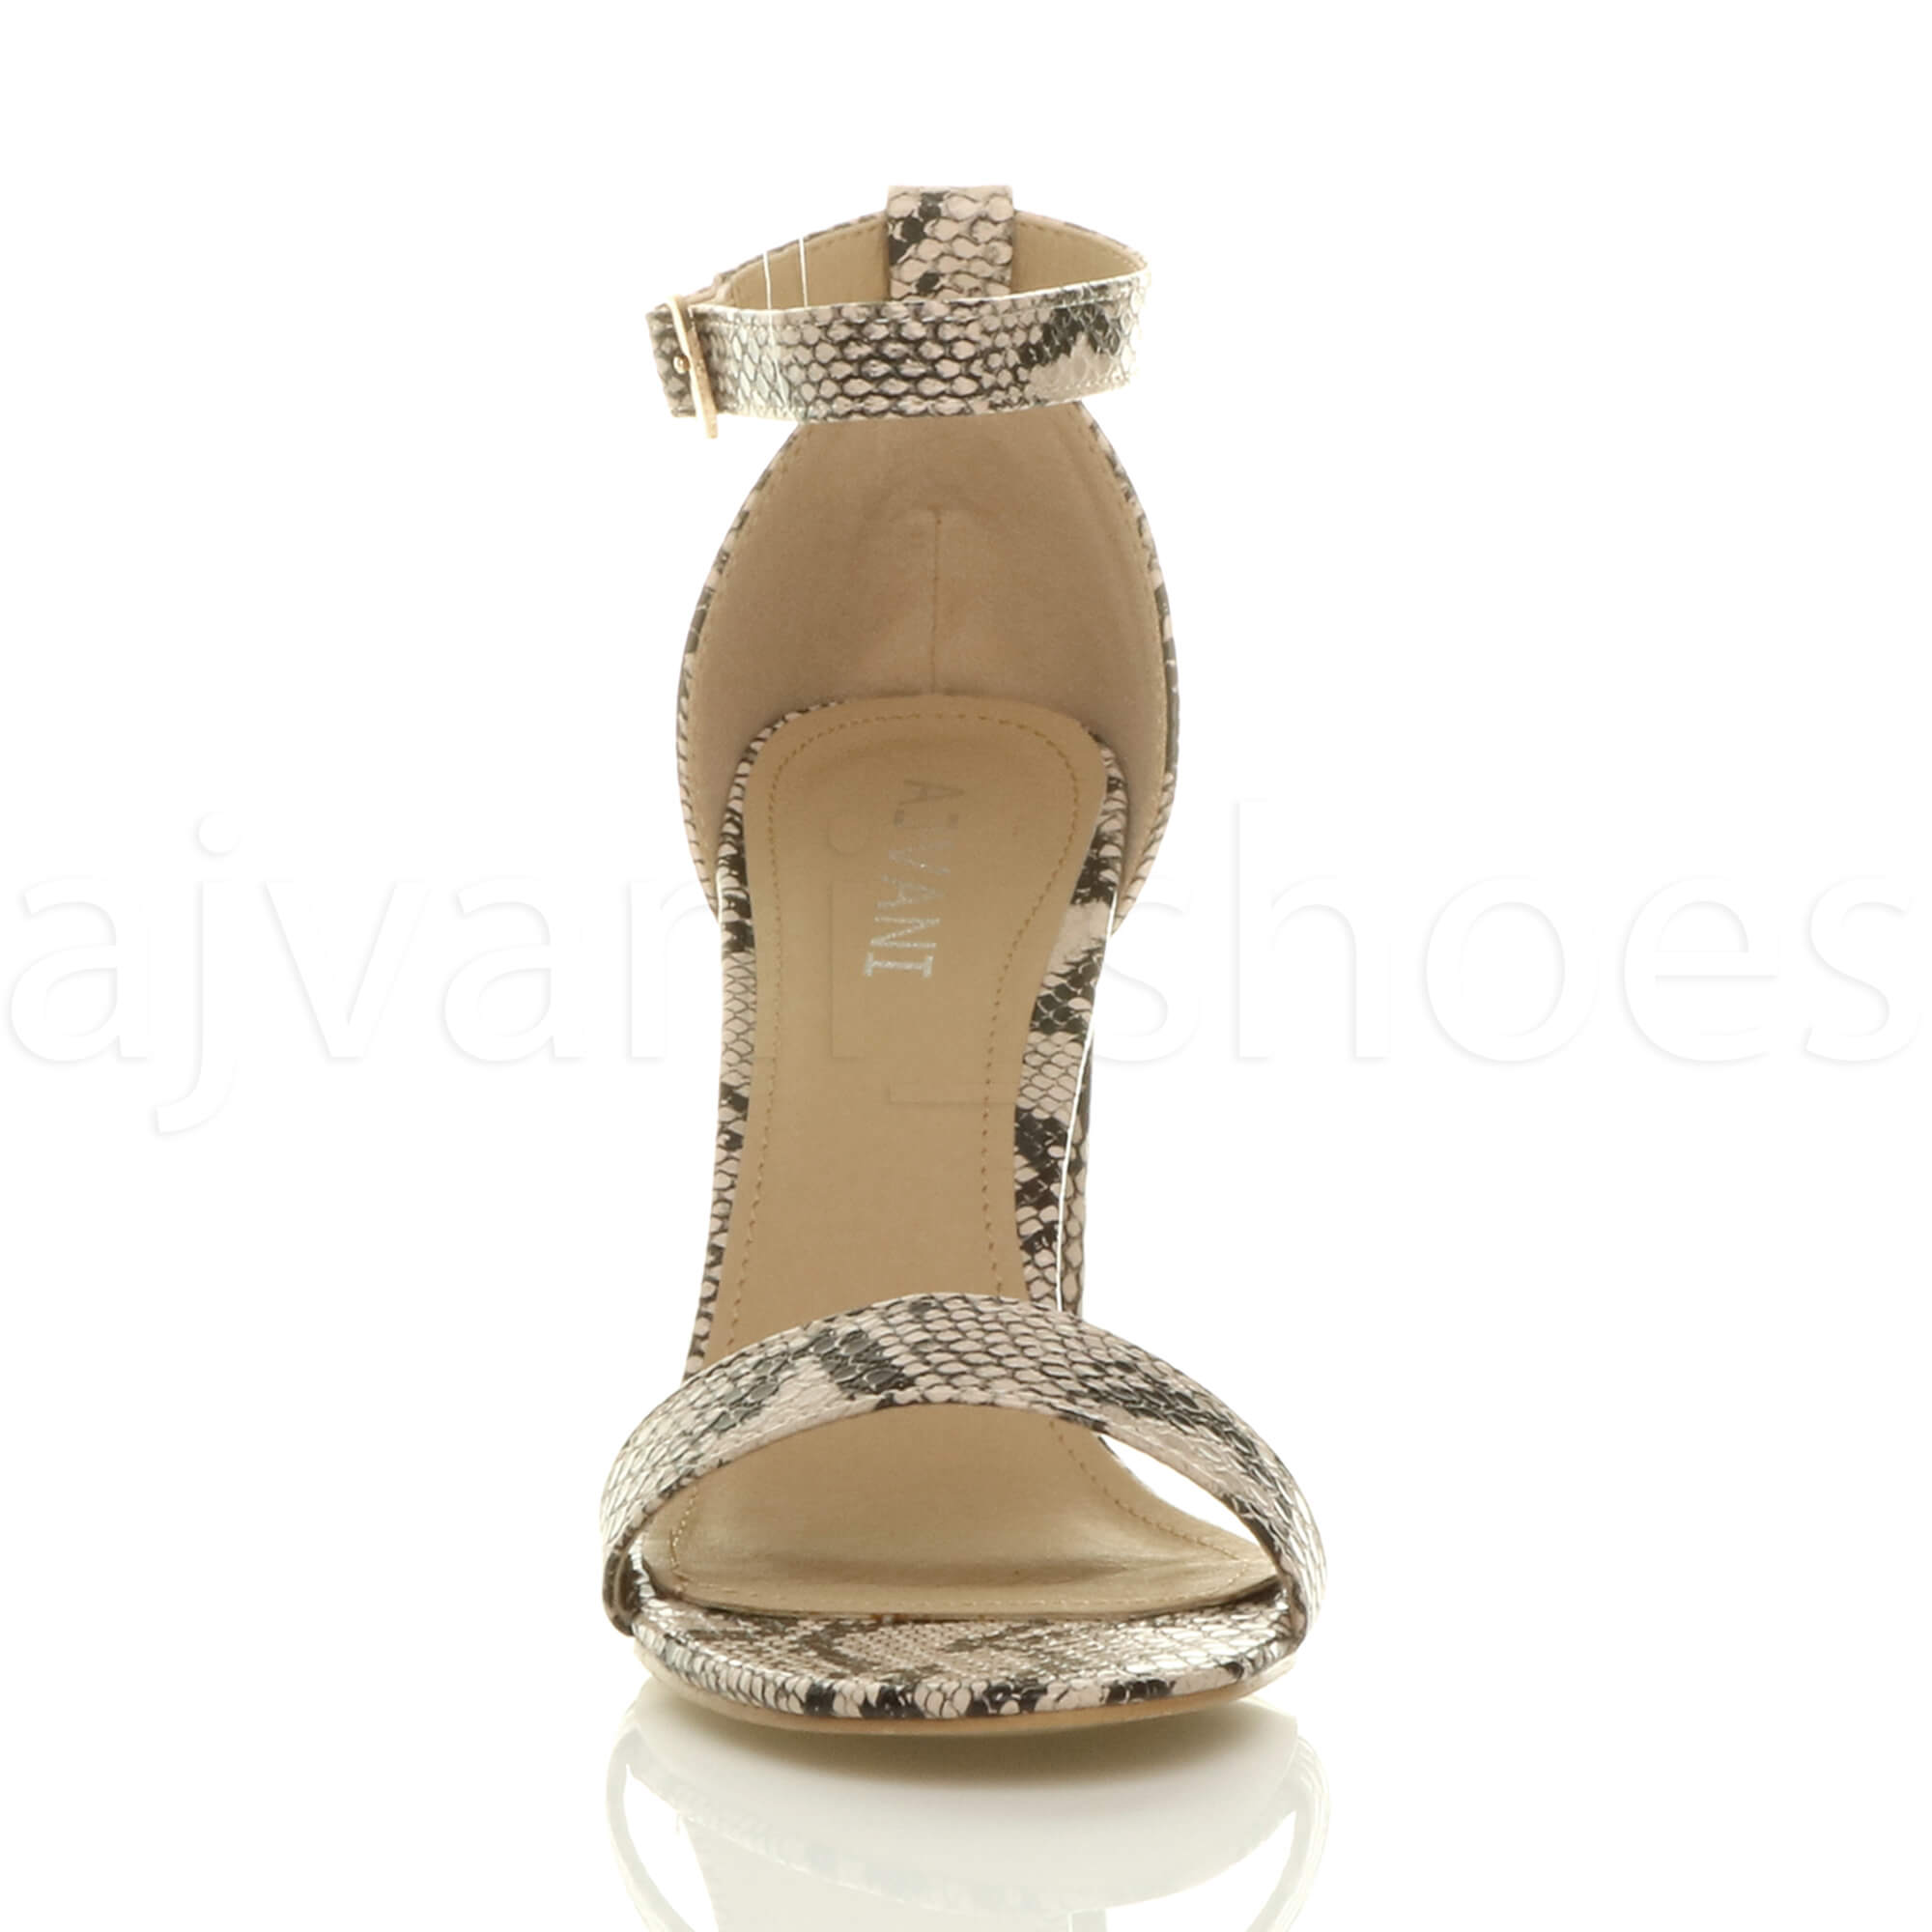 WOMENS-LADIES-BLOCK-HIGH-HEEL-ANKLE-STRAP-PEEP-TOE-STRAPPY-SANDALS-SHOES-SIZE thumbnail 6